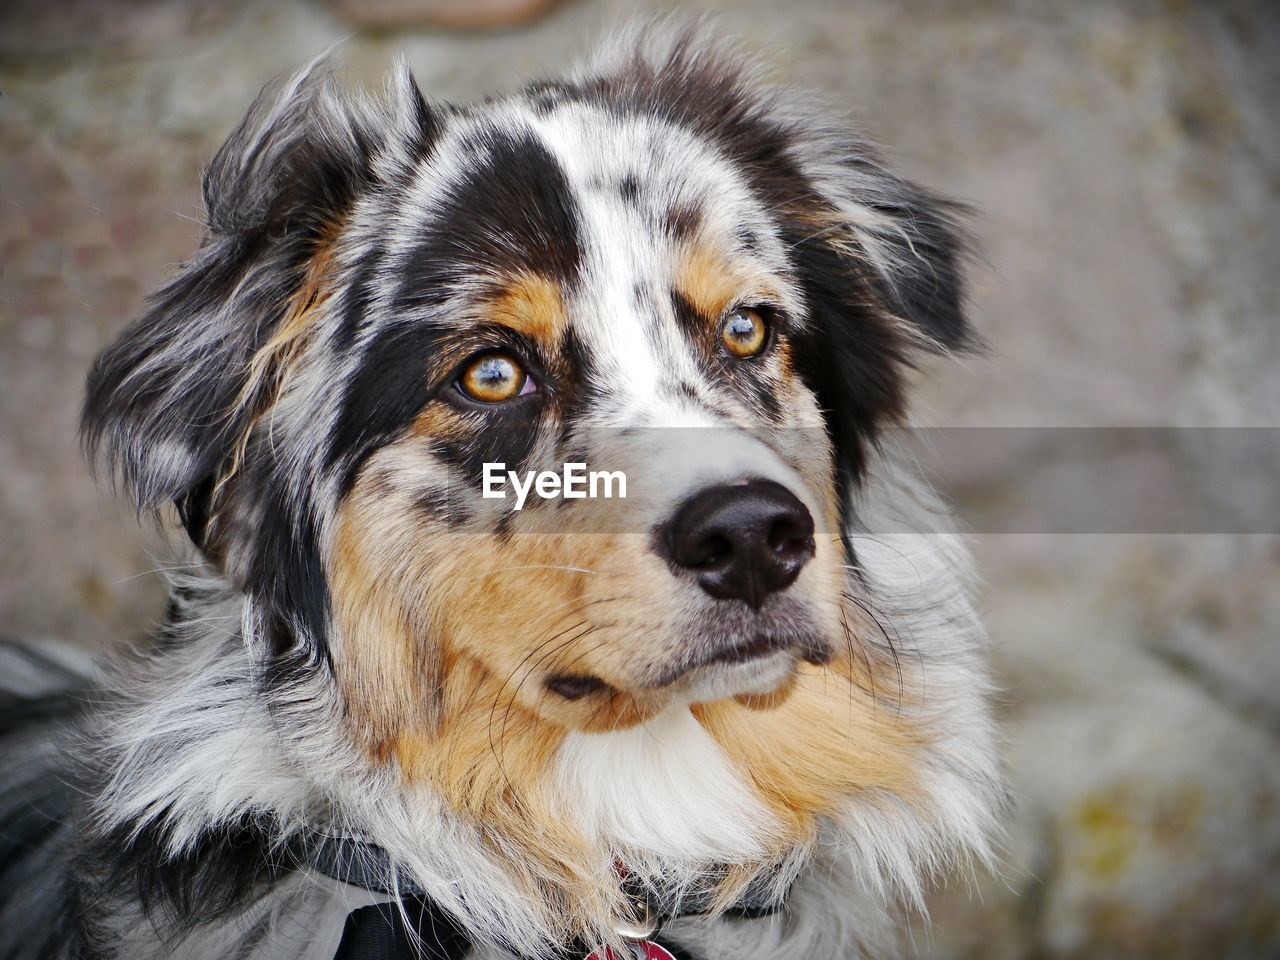 dog, canine, one animal, animal, animal themes, mammal, pets, domestic animals, domestic, portrait, focus on foreground, vertebrate, looking at camera, close-up, no people, day, animal body part, animal head, outdoors, looking, border collie, mouth open, animal mouth, whisker